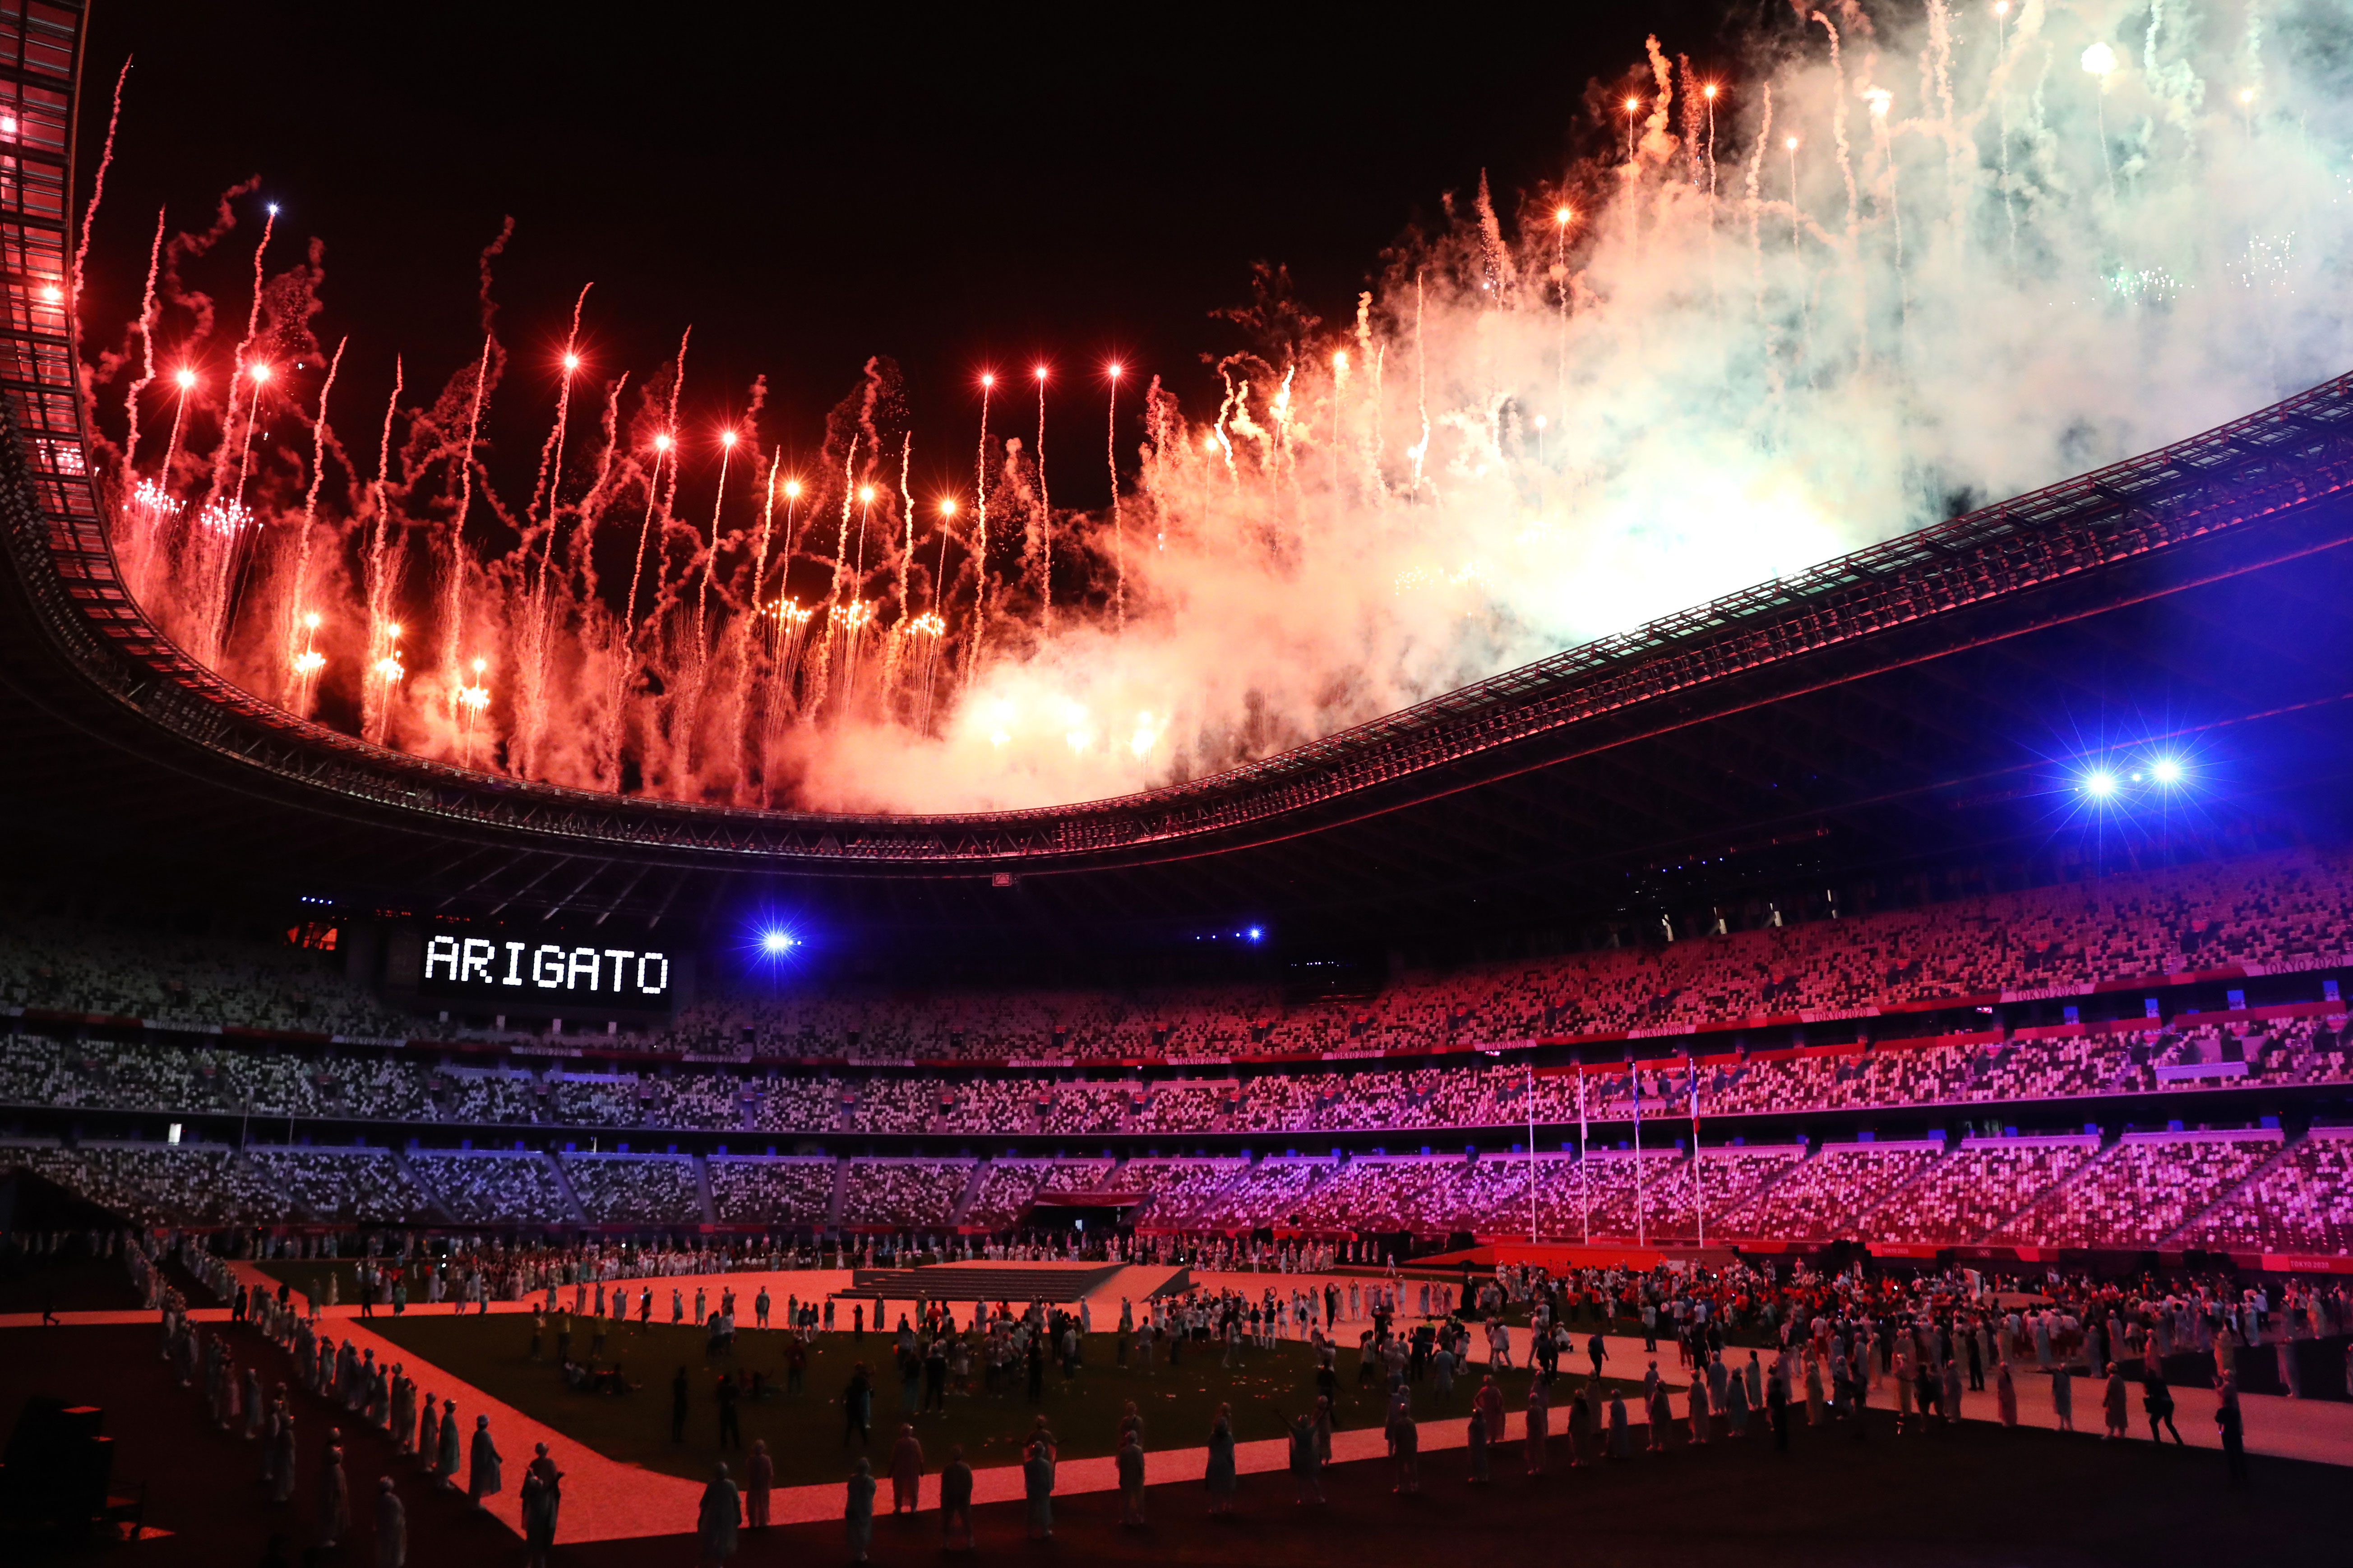 Fireworks explode over Tokyo's National Stadium at the end of the Olympics' closing ceremony on August 8. The word